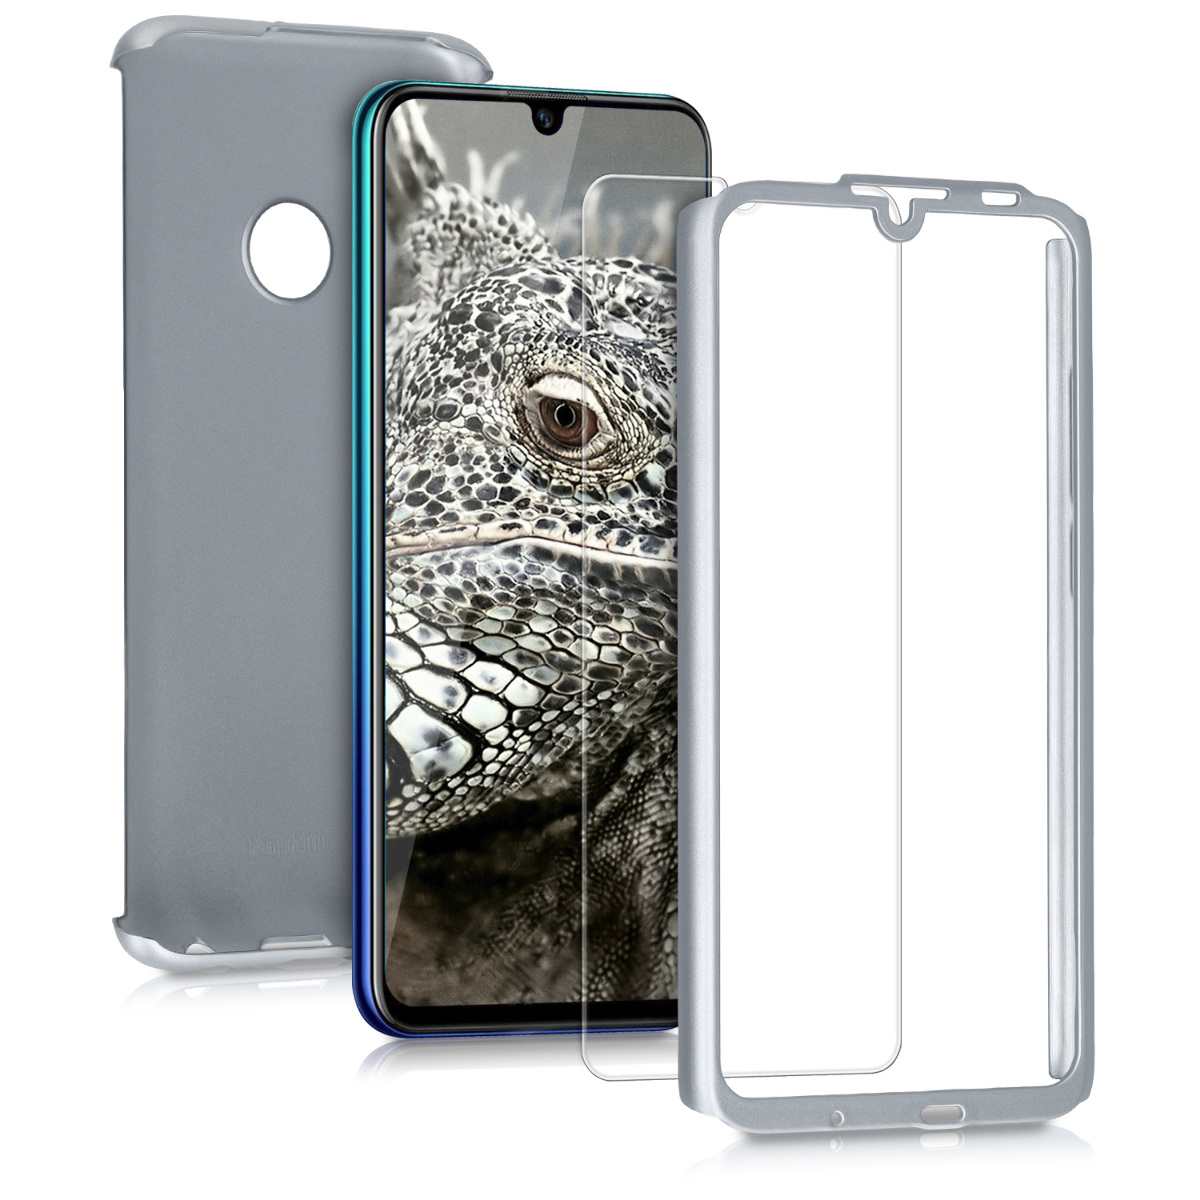 KW Θήκη Full Body Huawei P Smart 2019 & Tempered Glass - Metallic Silver (47391.67)